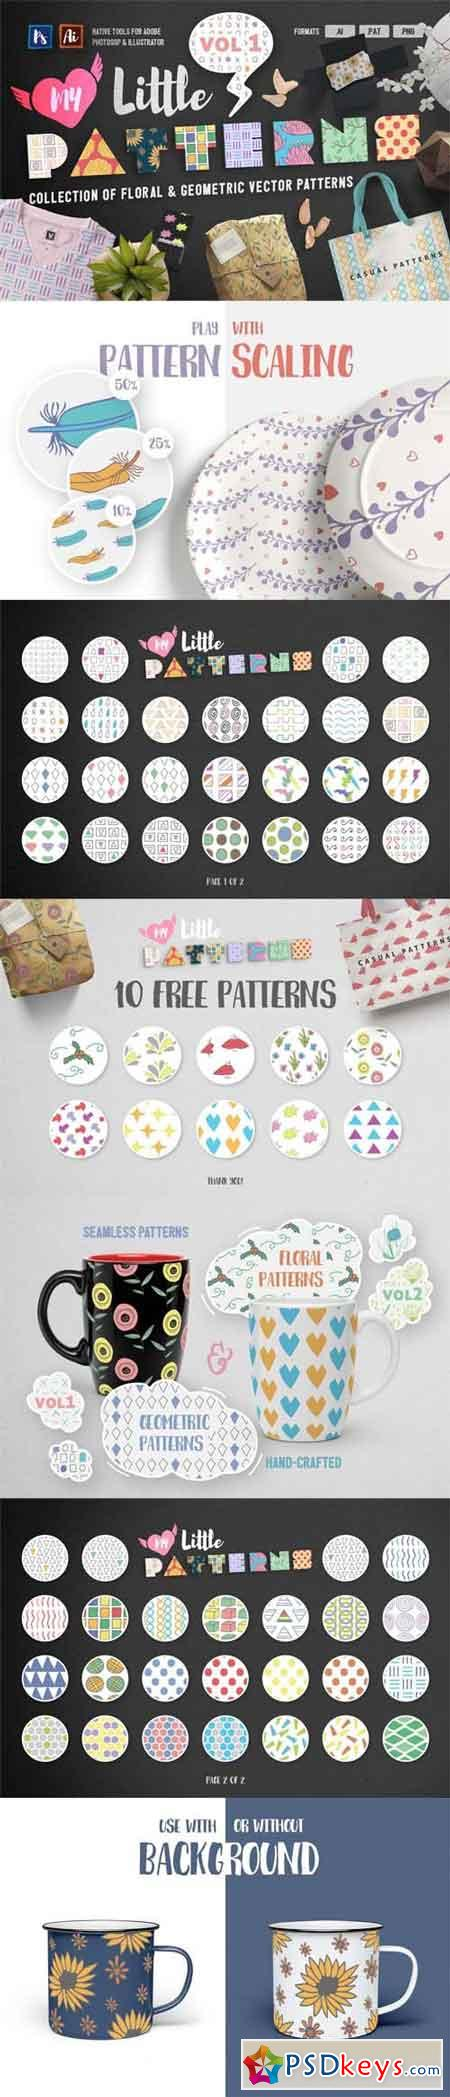 My Little Patterns Vol. 1